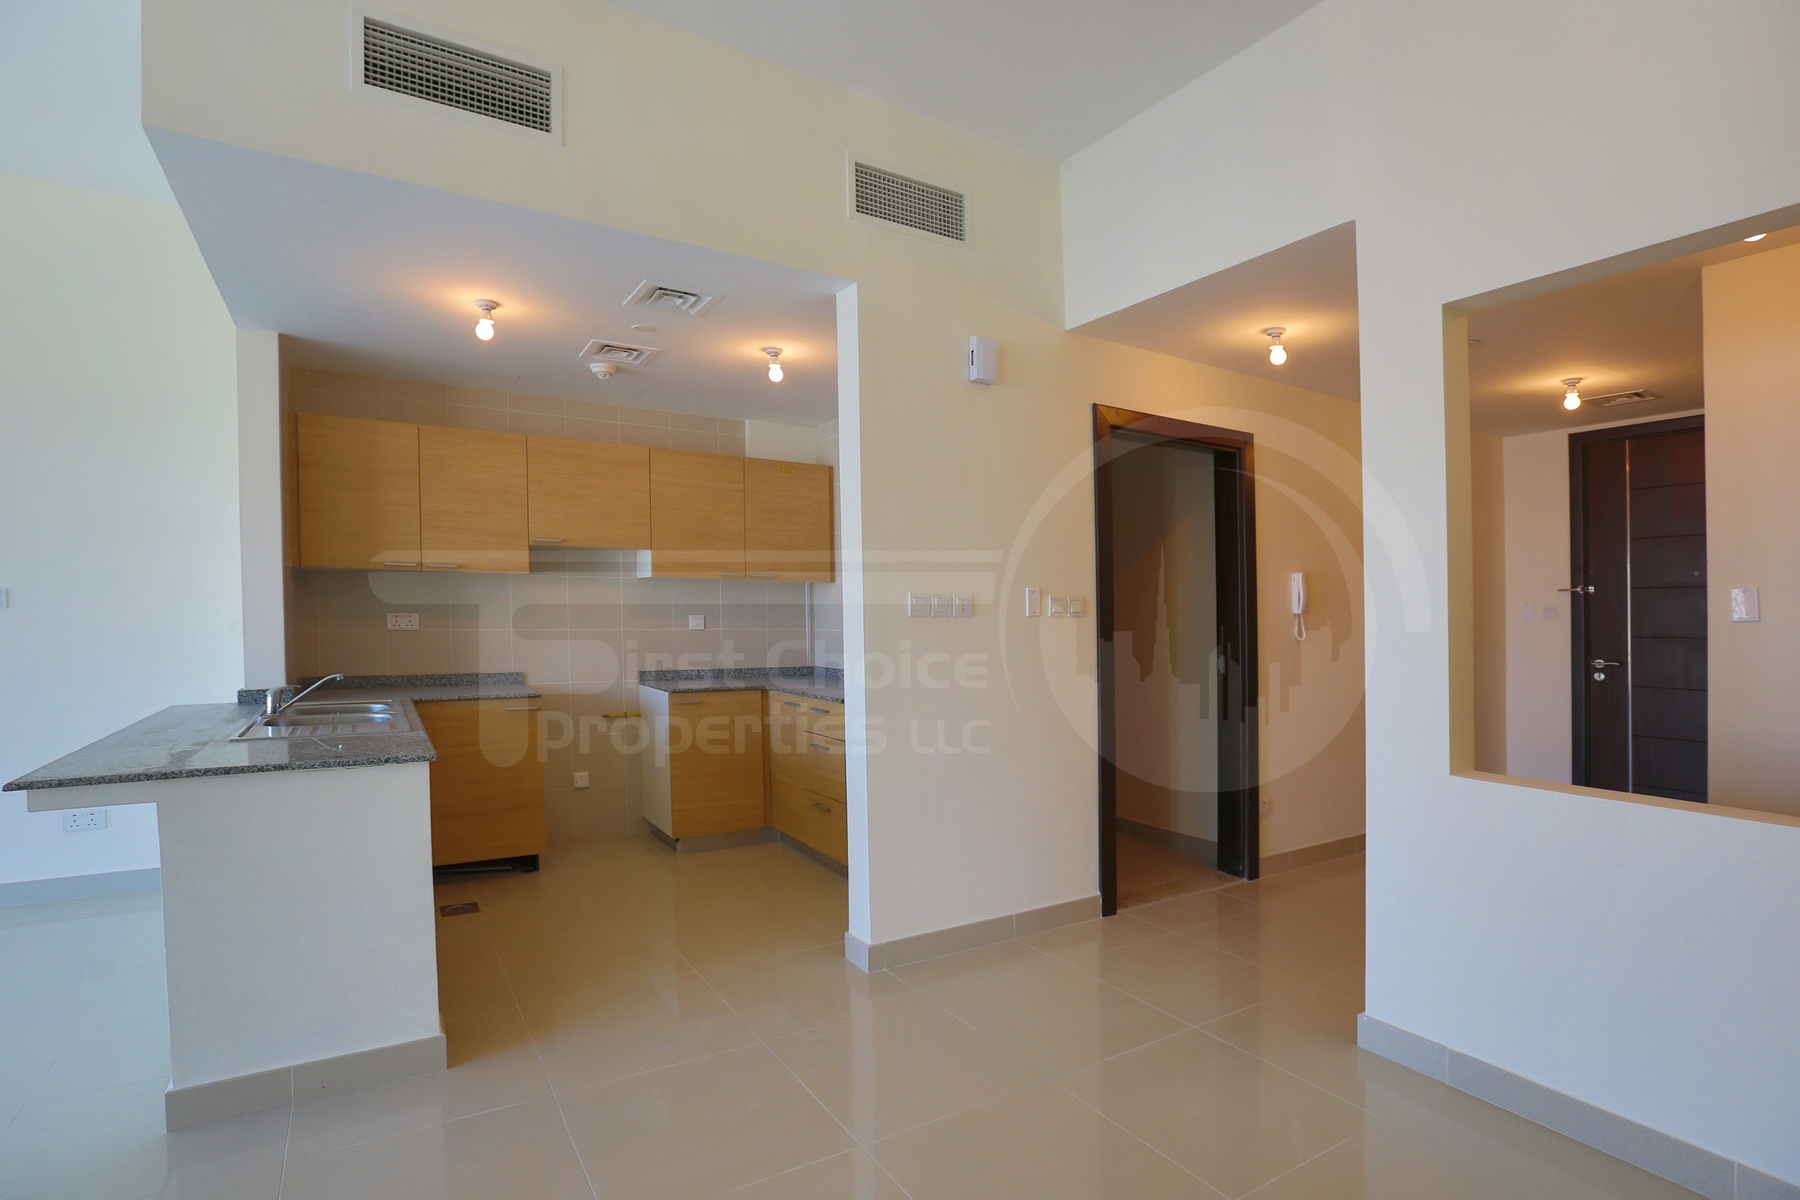 1BR Apartment - Abu Dhabi - UAE - Al Reem Island - City of Lights - C10 Building (5).JPG